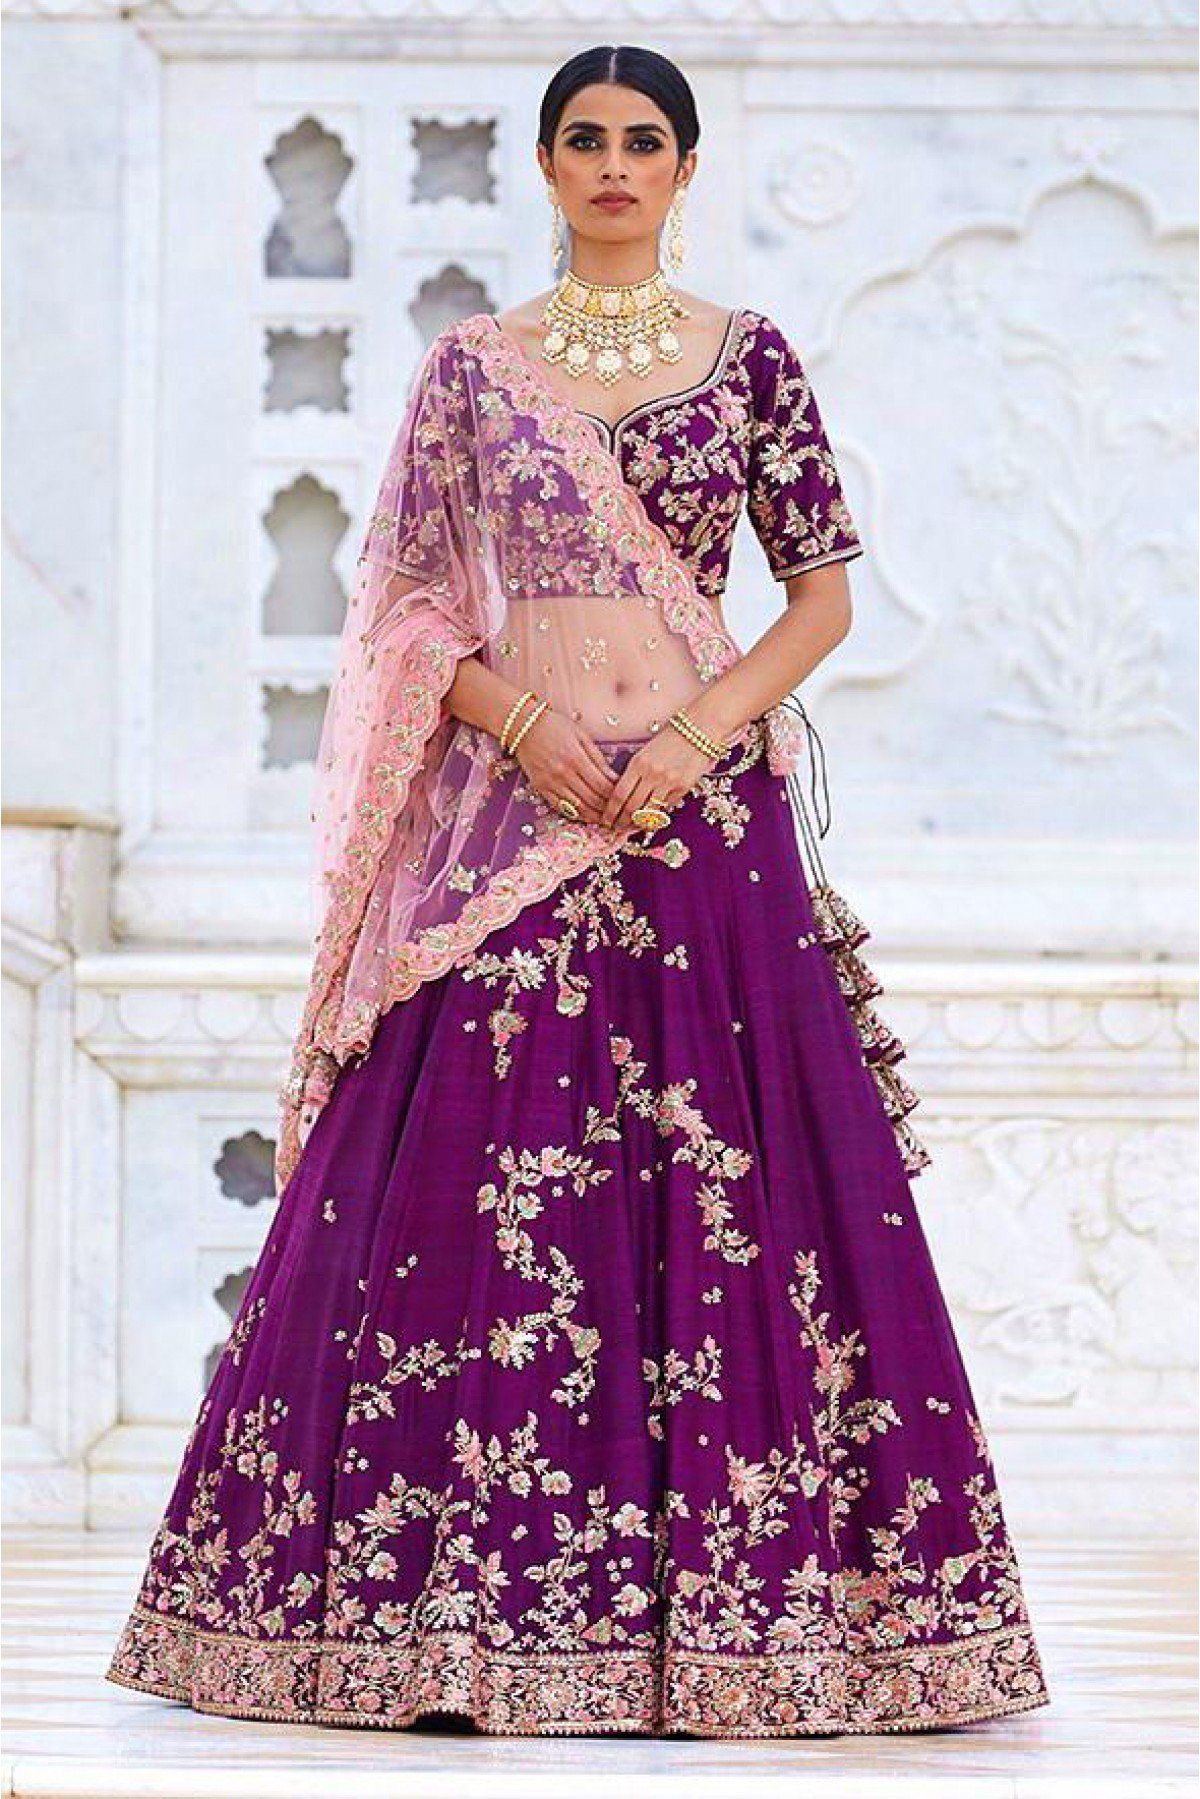 961acccd75 Purple Colour Ruby Silk Fabric Party Wear Lehenga Choli Comes With Matching  Blouse. This Lehenga Choli Is Crafted With Embroidery. This Lehenga Choli  Comes ...